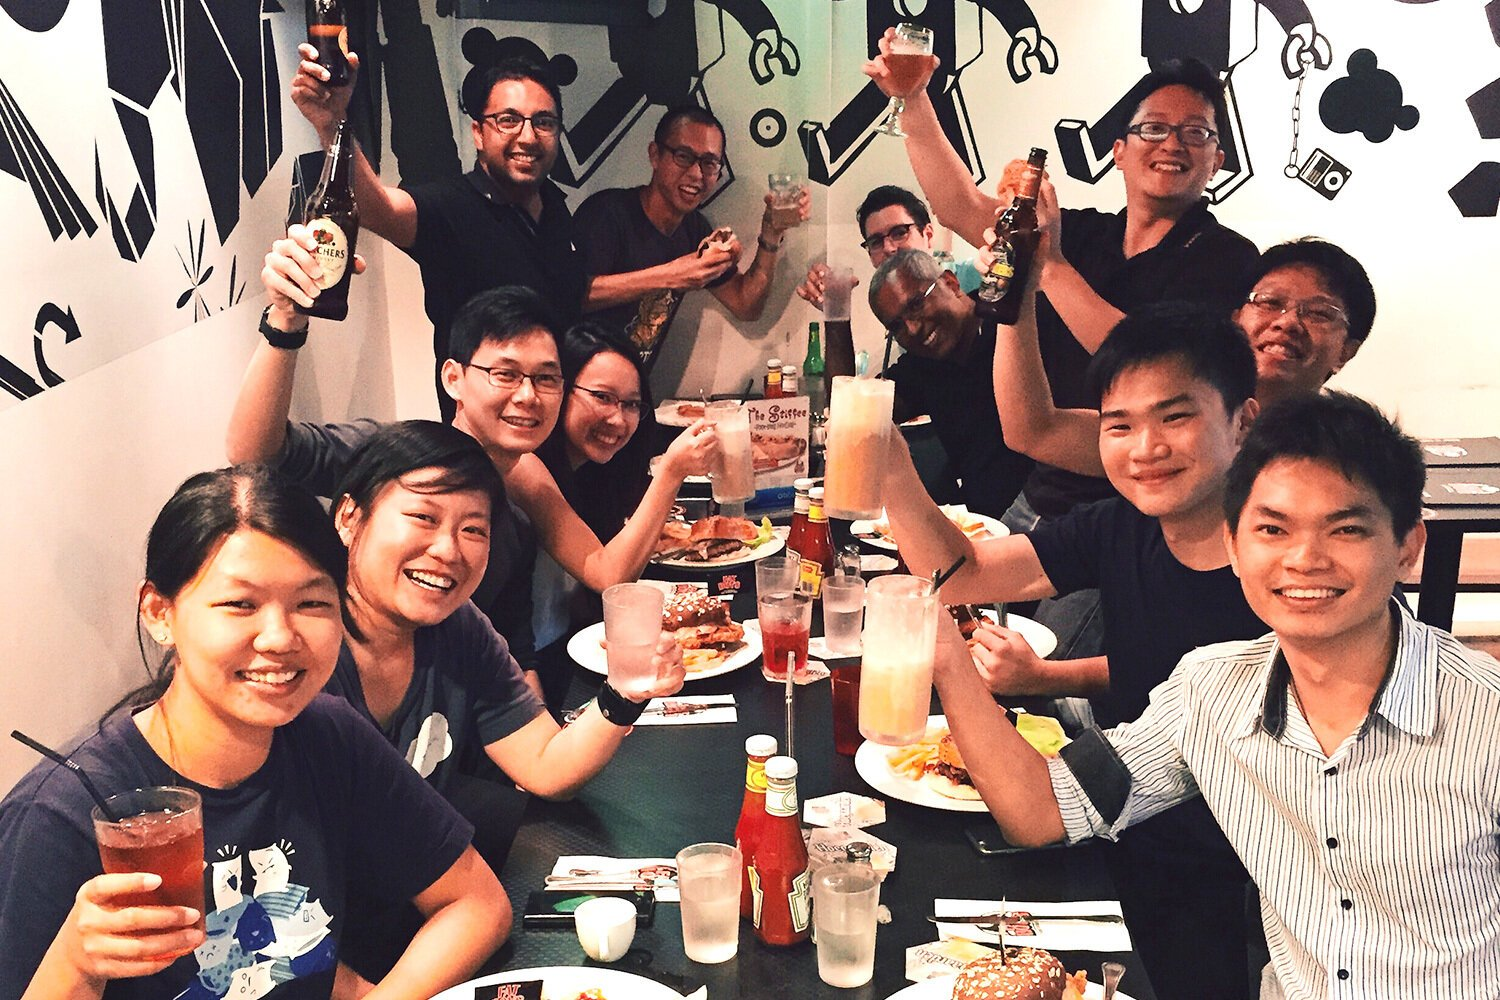 The Buuuk team at Fatboy burger on one of the Friday dinners